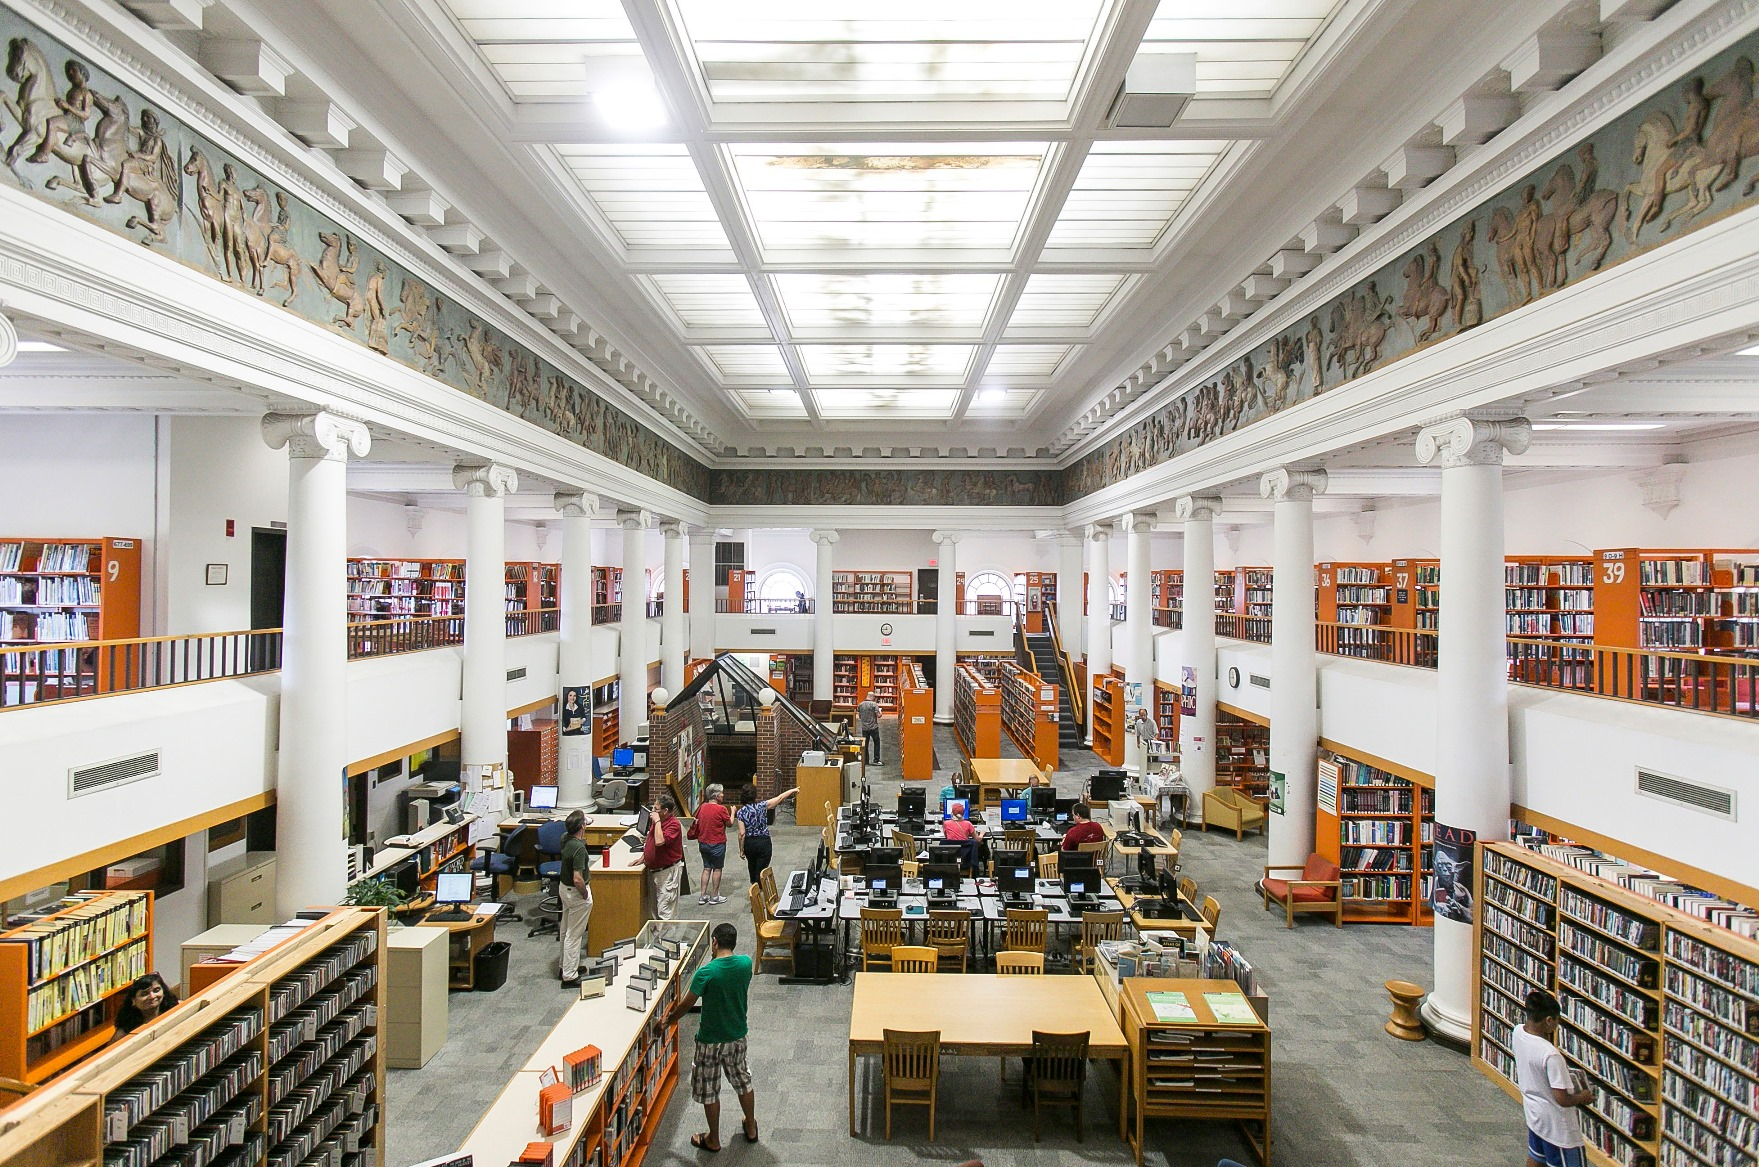 Image depicting reading room of Central library.